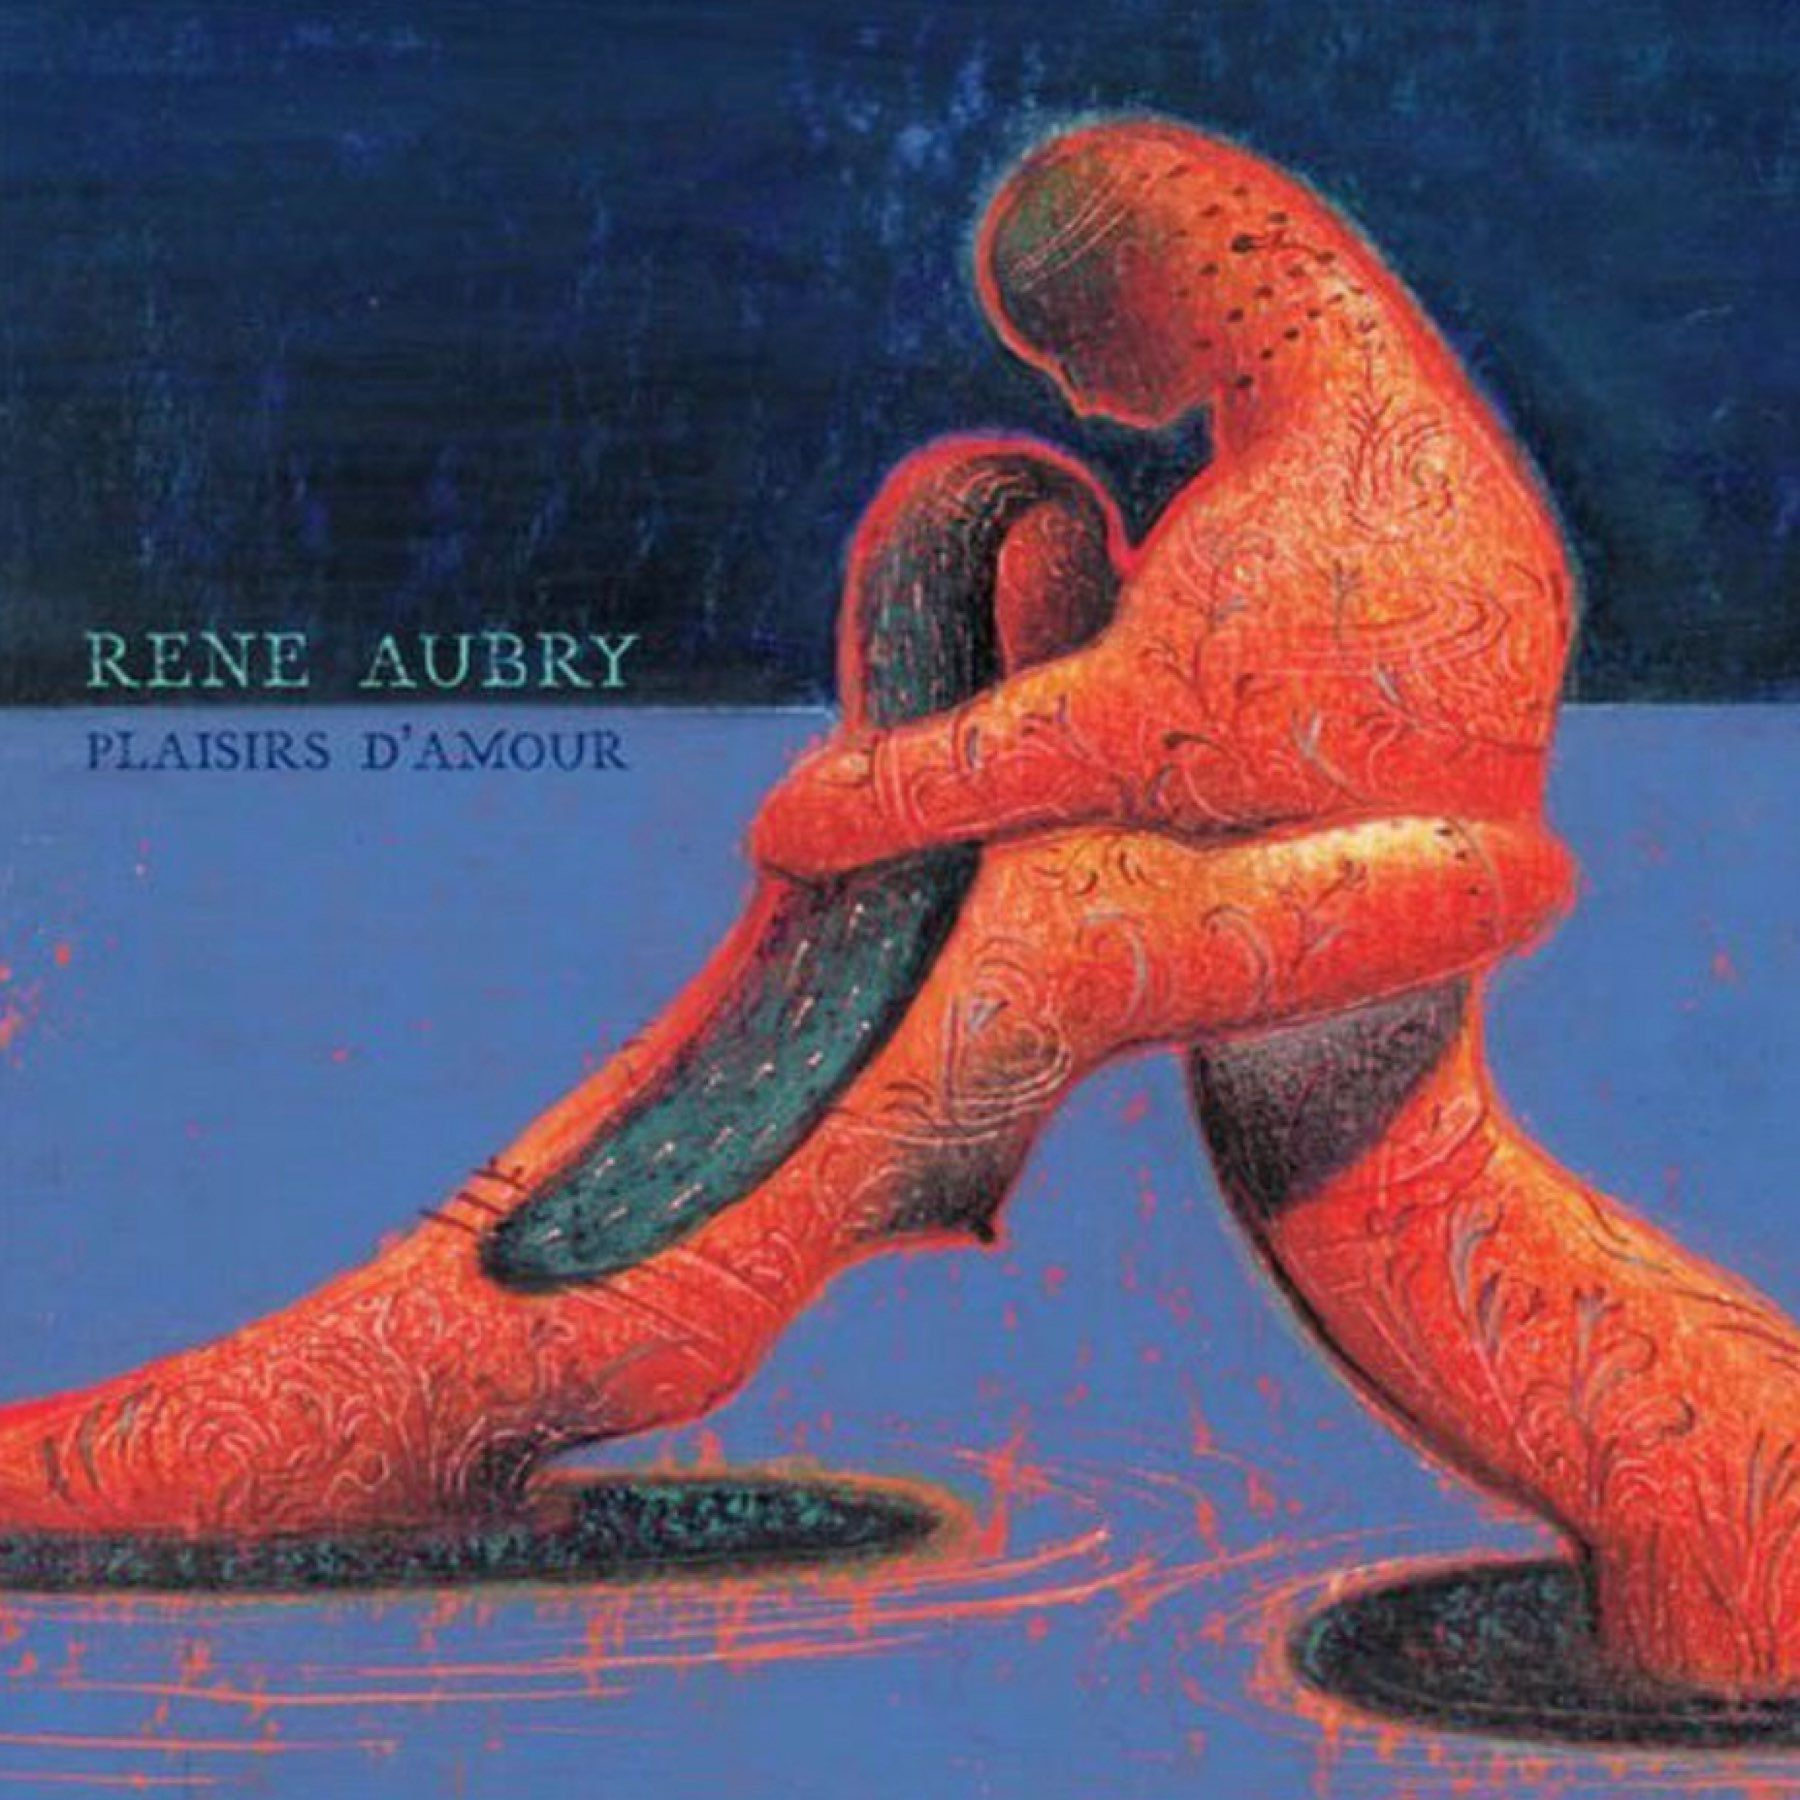 Album Cover of Plaisirs d'amour by René Aubry.